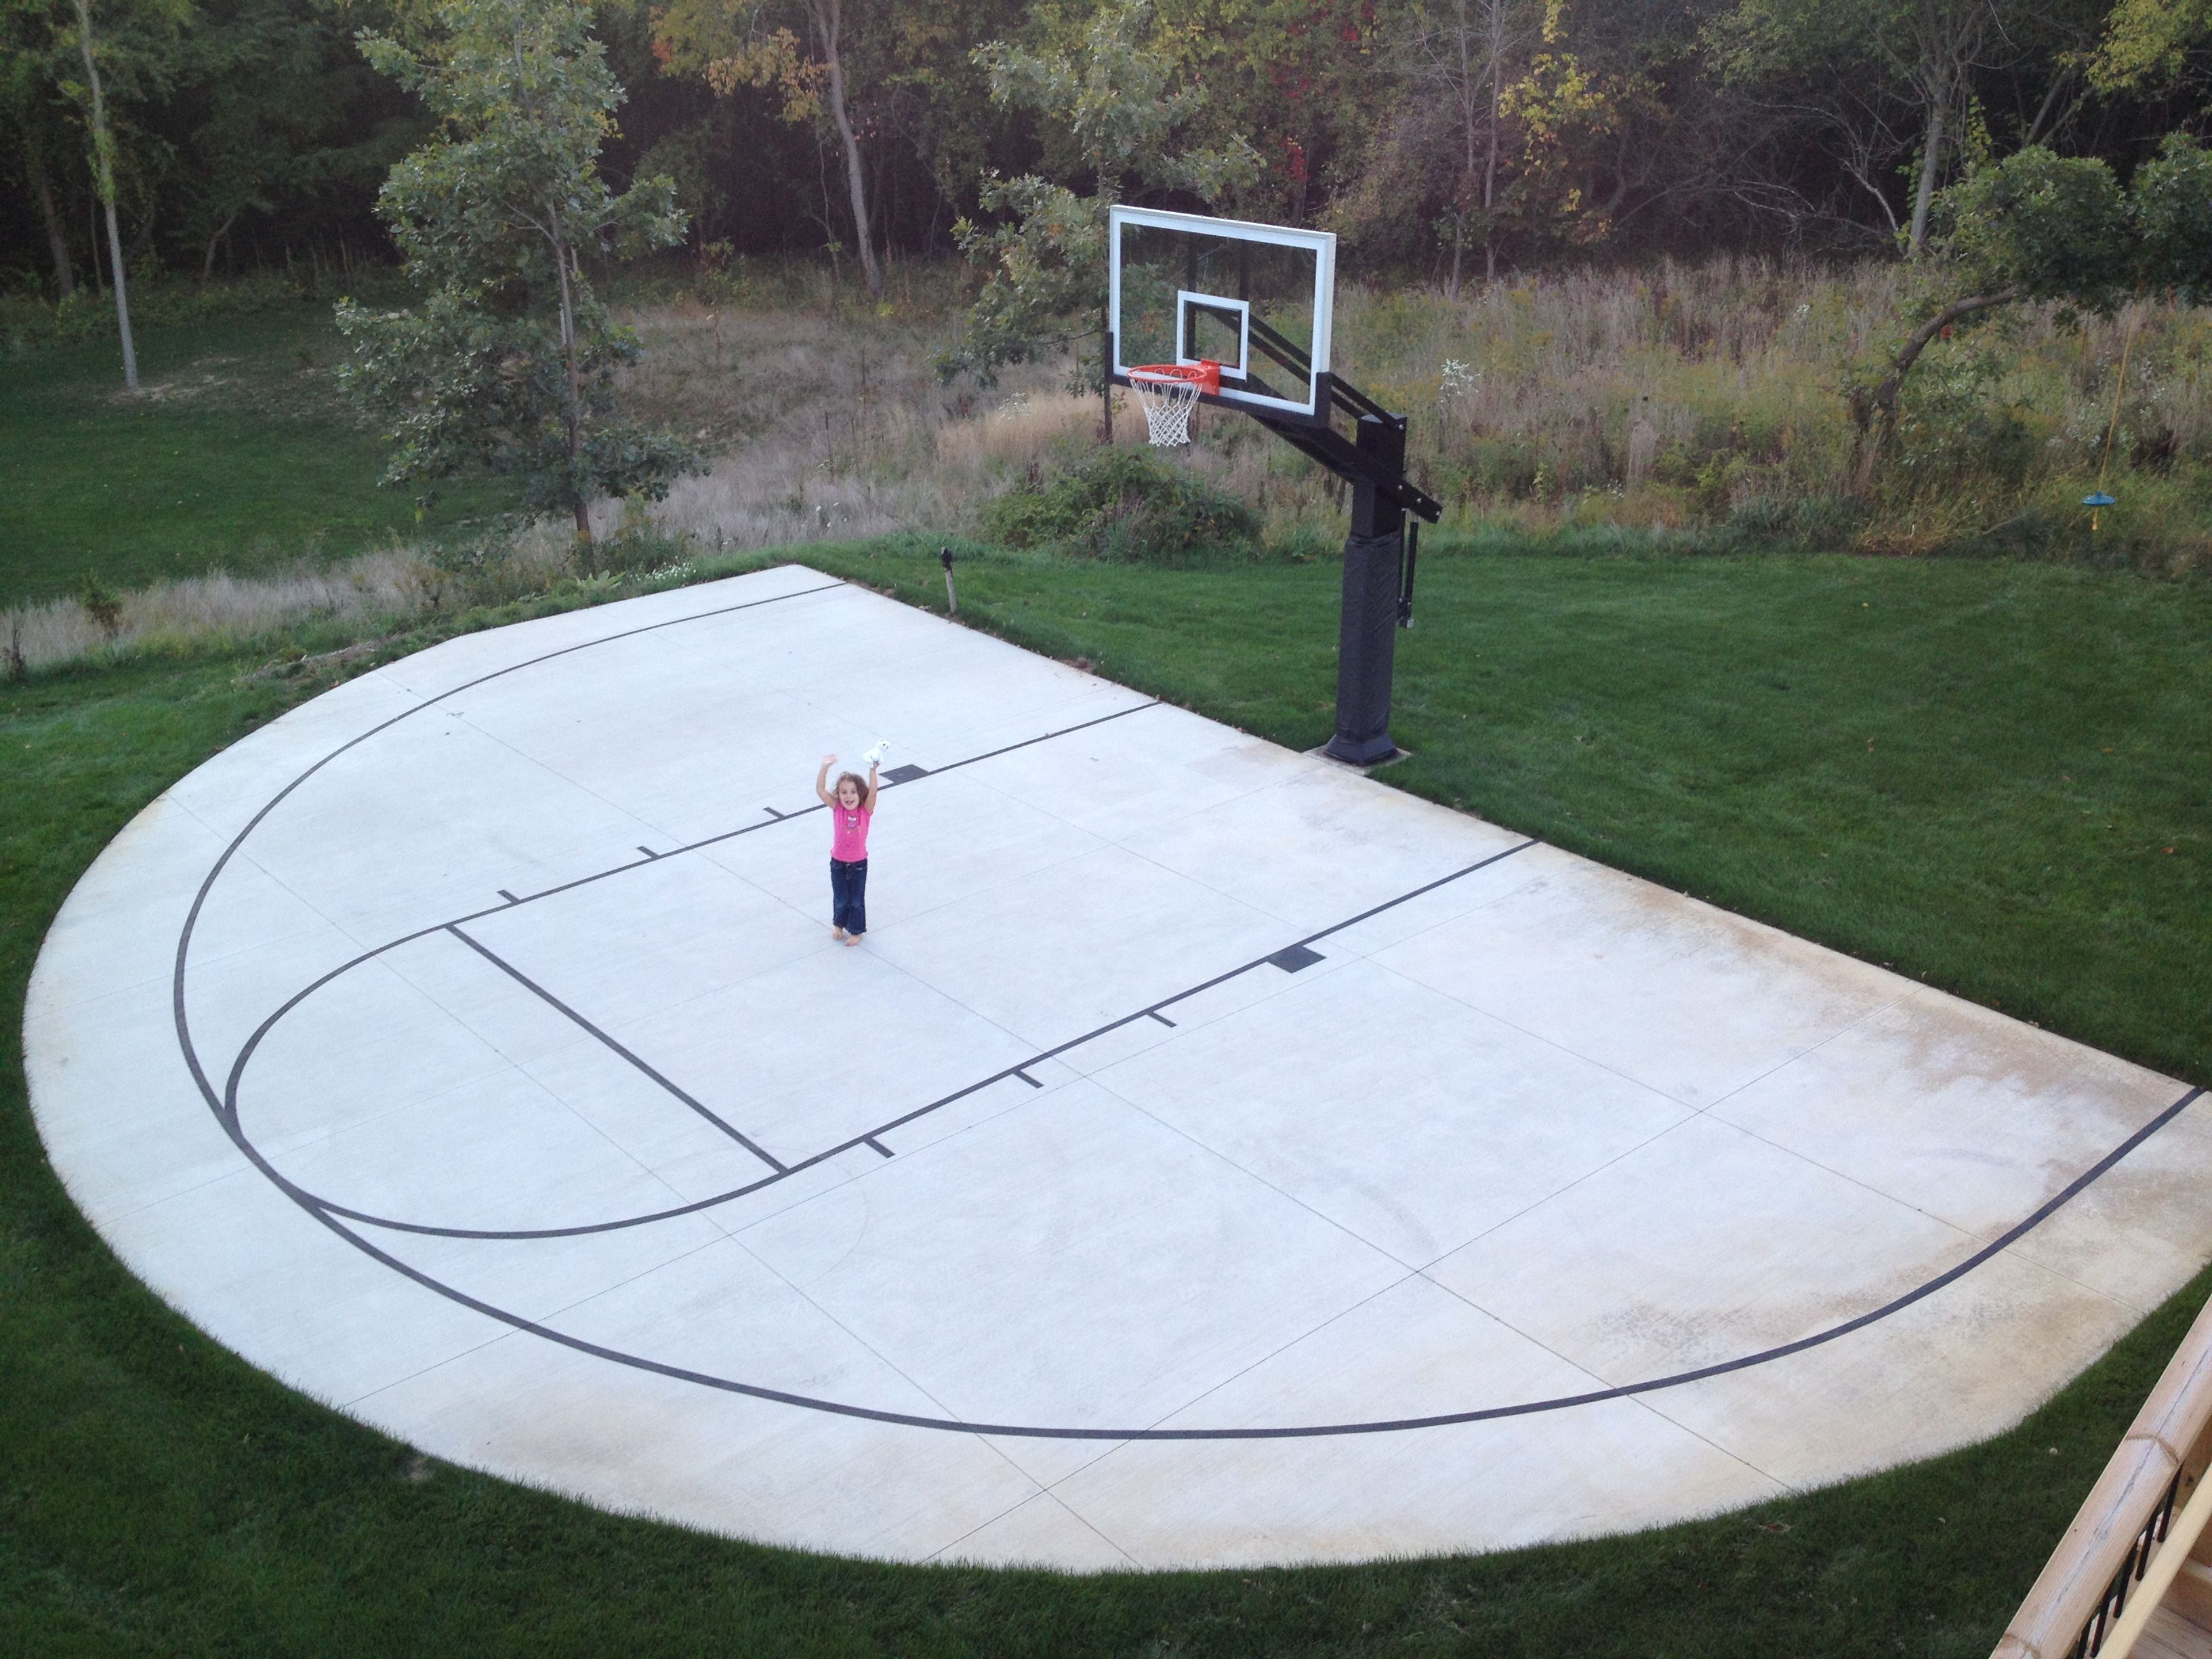 22 Genius Concepts Of How To Makeover Backyard Sport Court Ideas Basketball Court Backyard Backyard Basketball Home Basketball Court